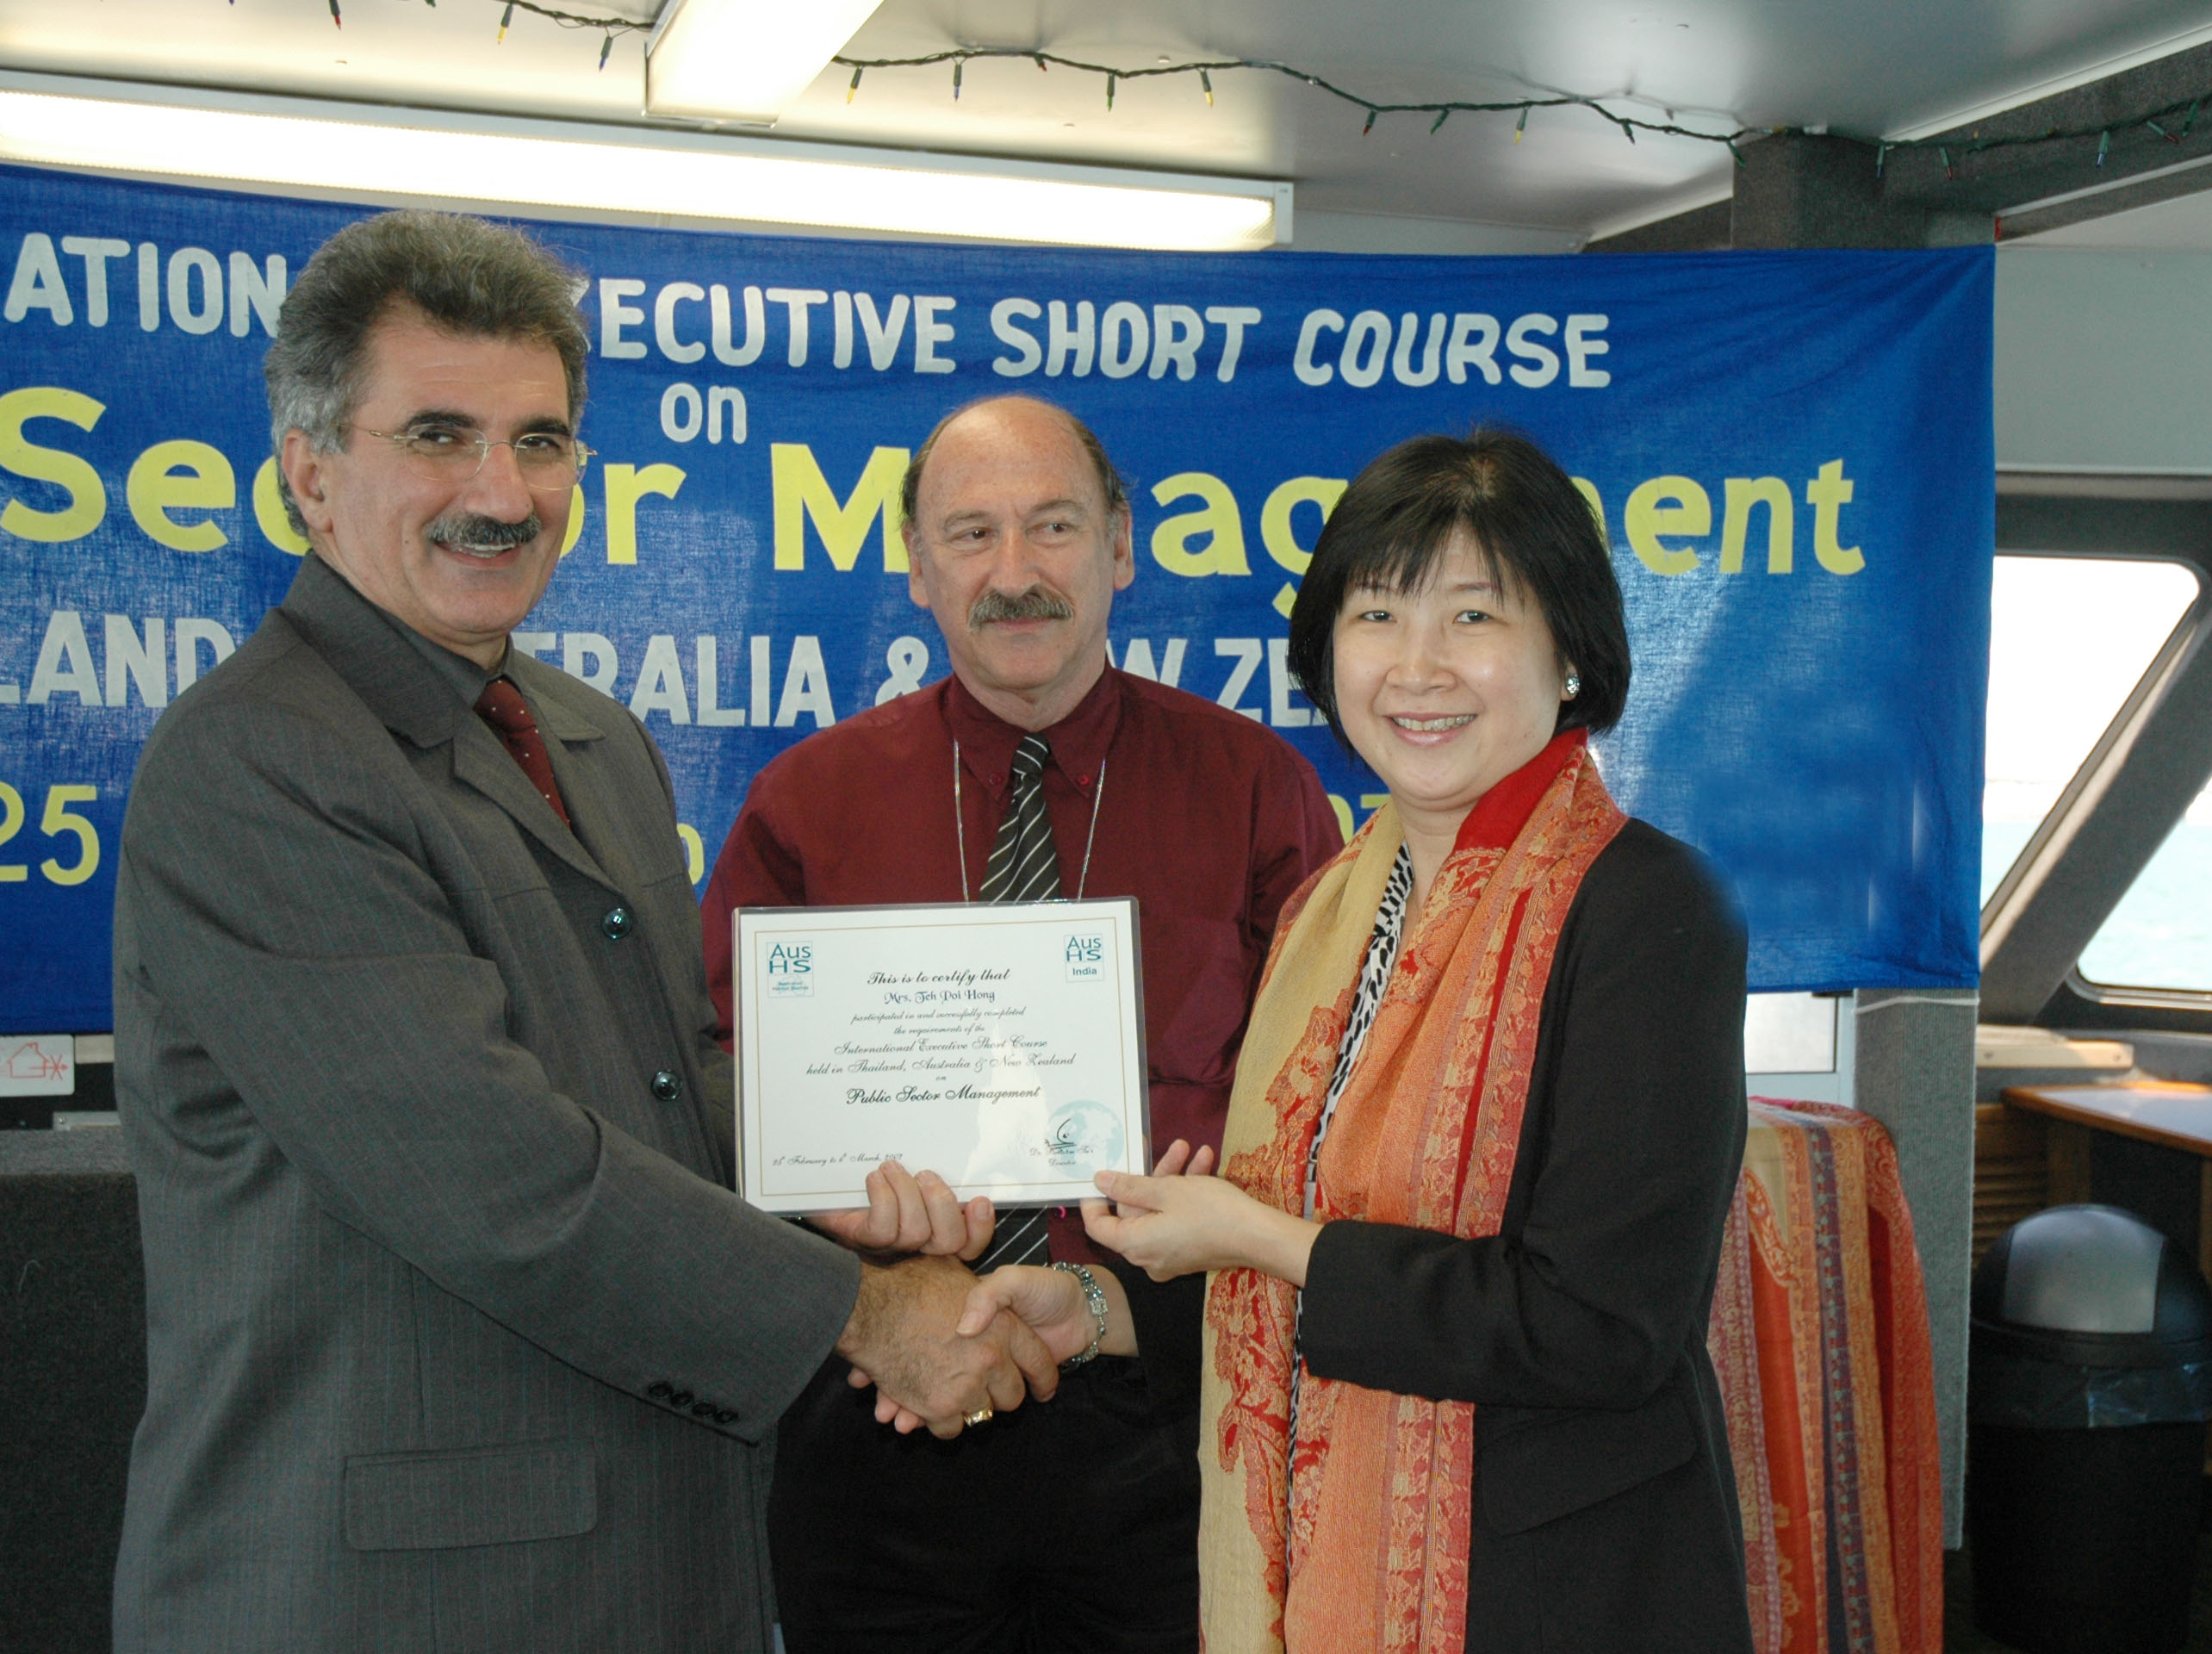 Presentation of Course Certificate to a distinguished participant of a CBN international training and study tour workshop held in New Zealand; short course on Good Governance series.